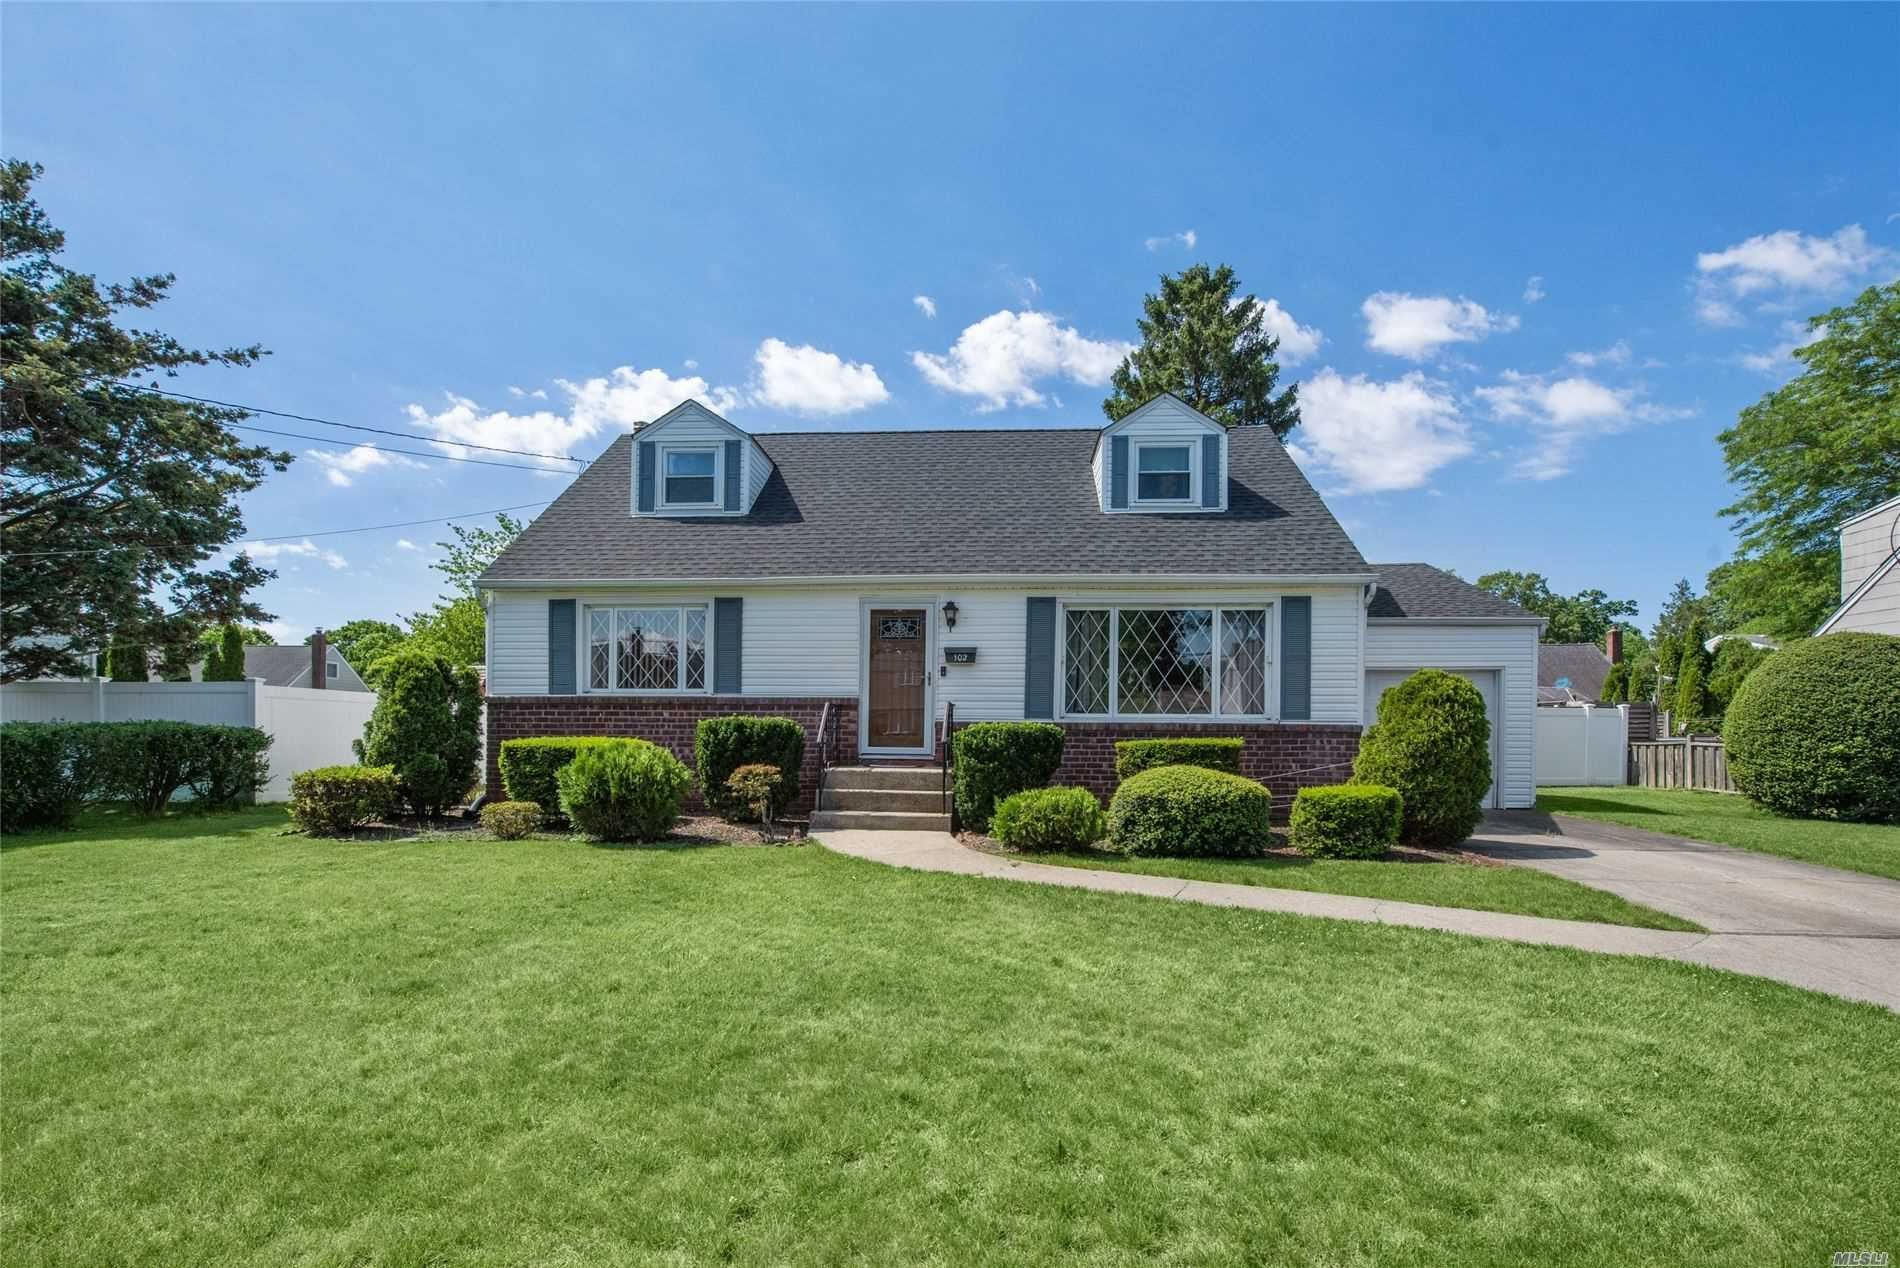 102 Brookes Road, North Babylon, NY 11703 - MLS#: 3222765